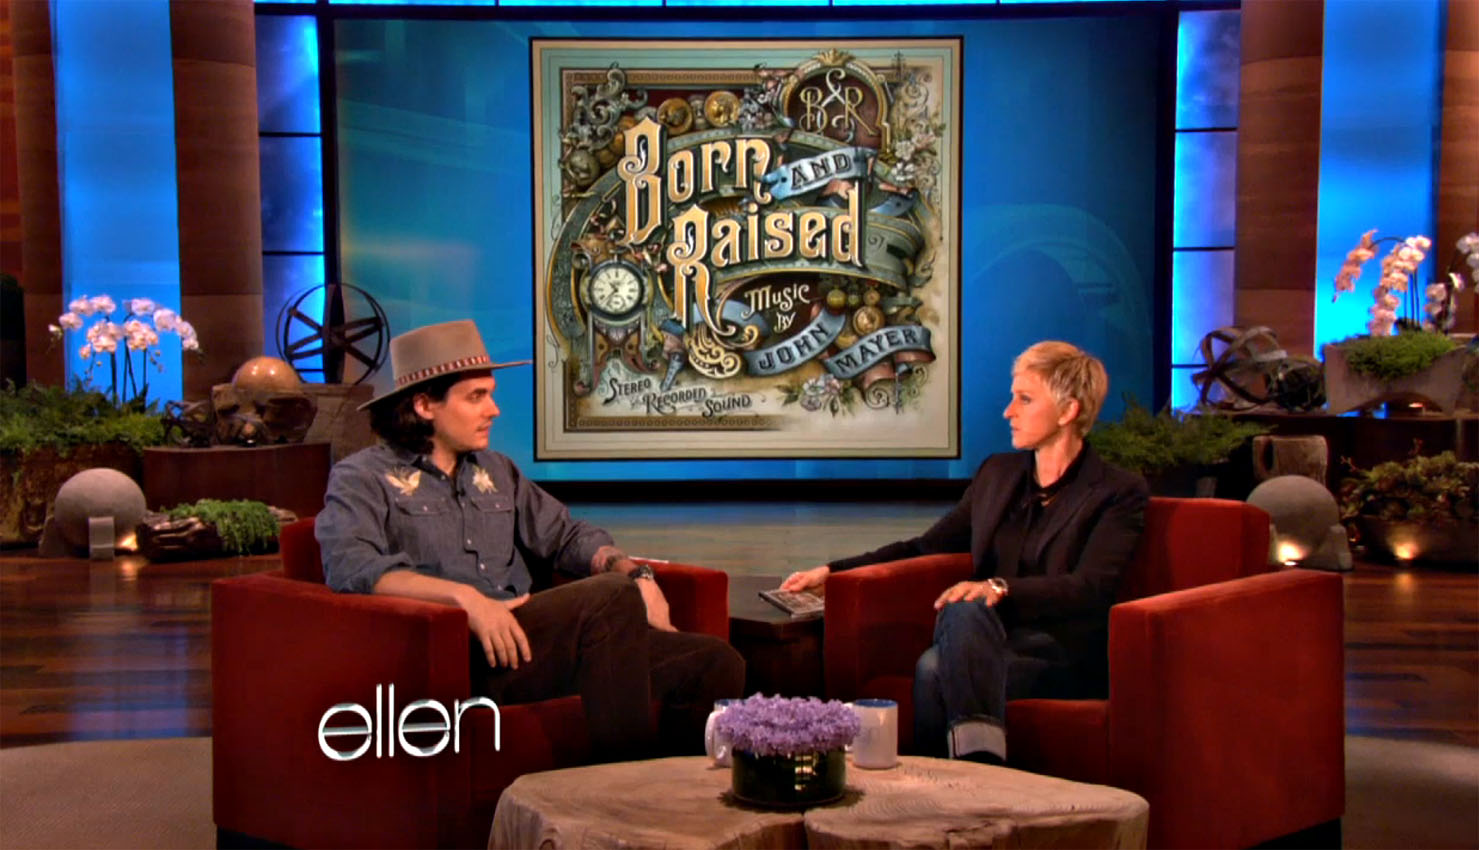 Ellen show new york john mayer david smith traditional ornamental glass artist - Ellen show new york ...